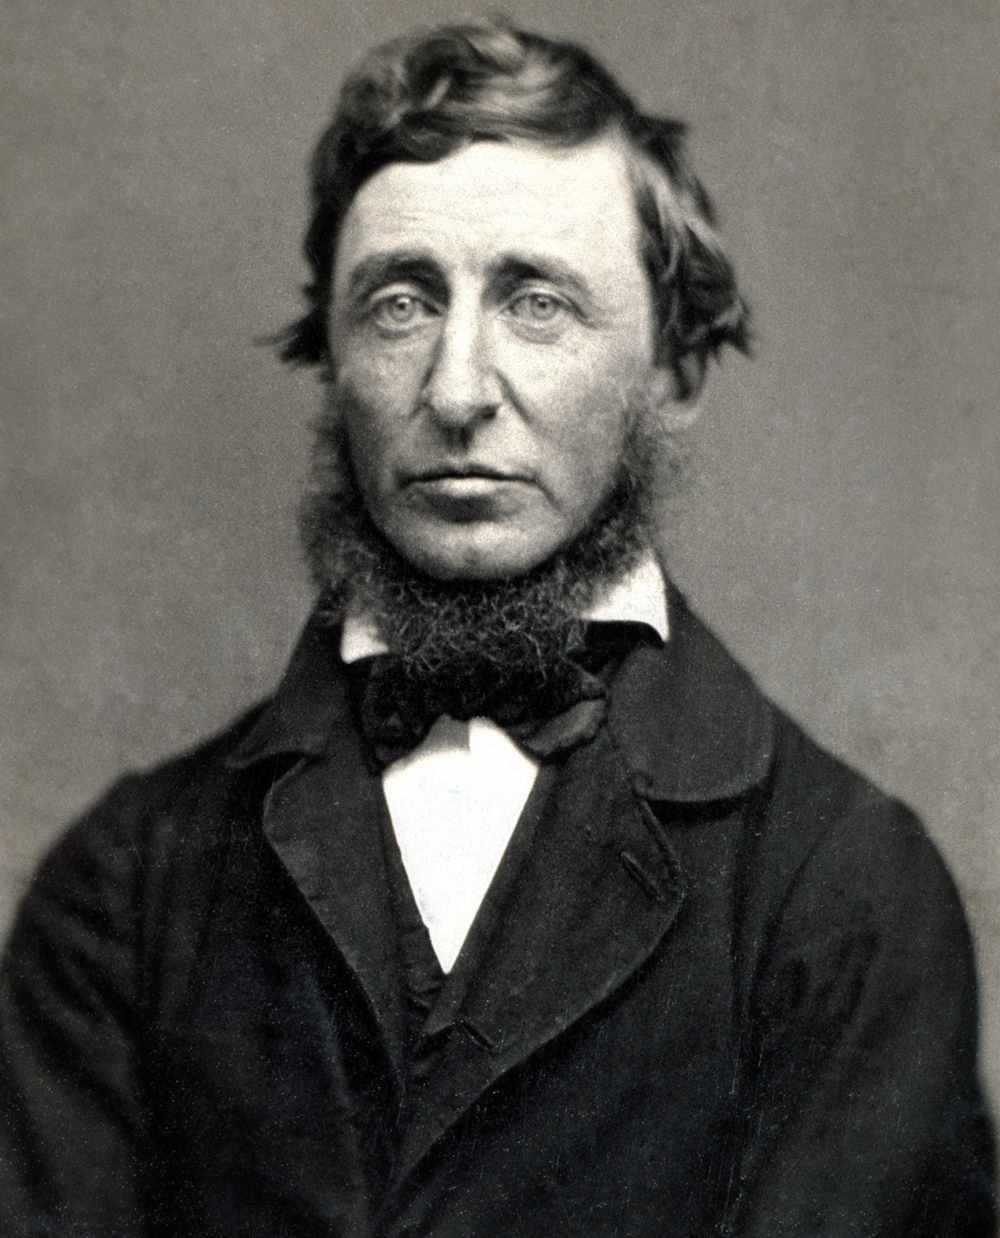 Daguerreotype of Thoreau by Benjamin D. Maxham. Public domain from Wikimedia Commons.